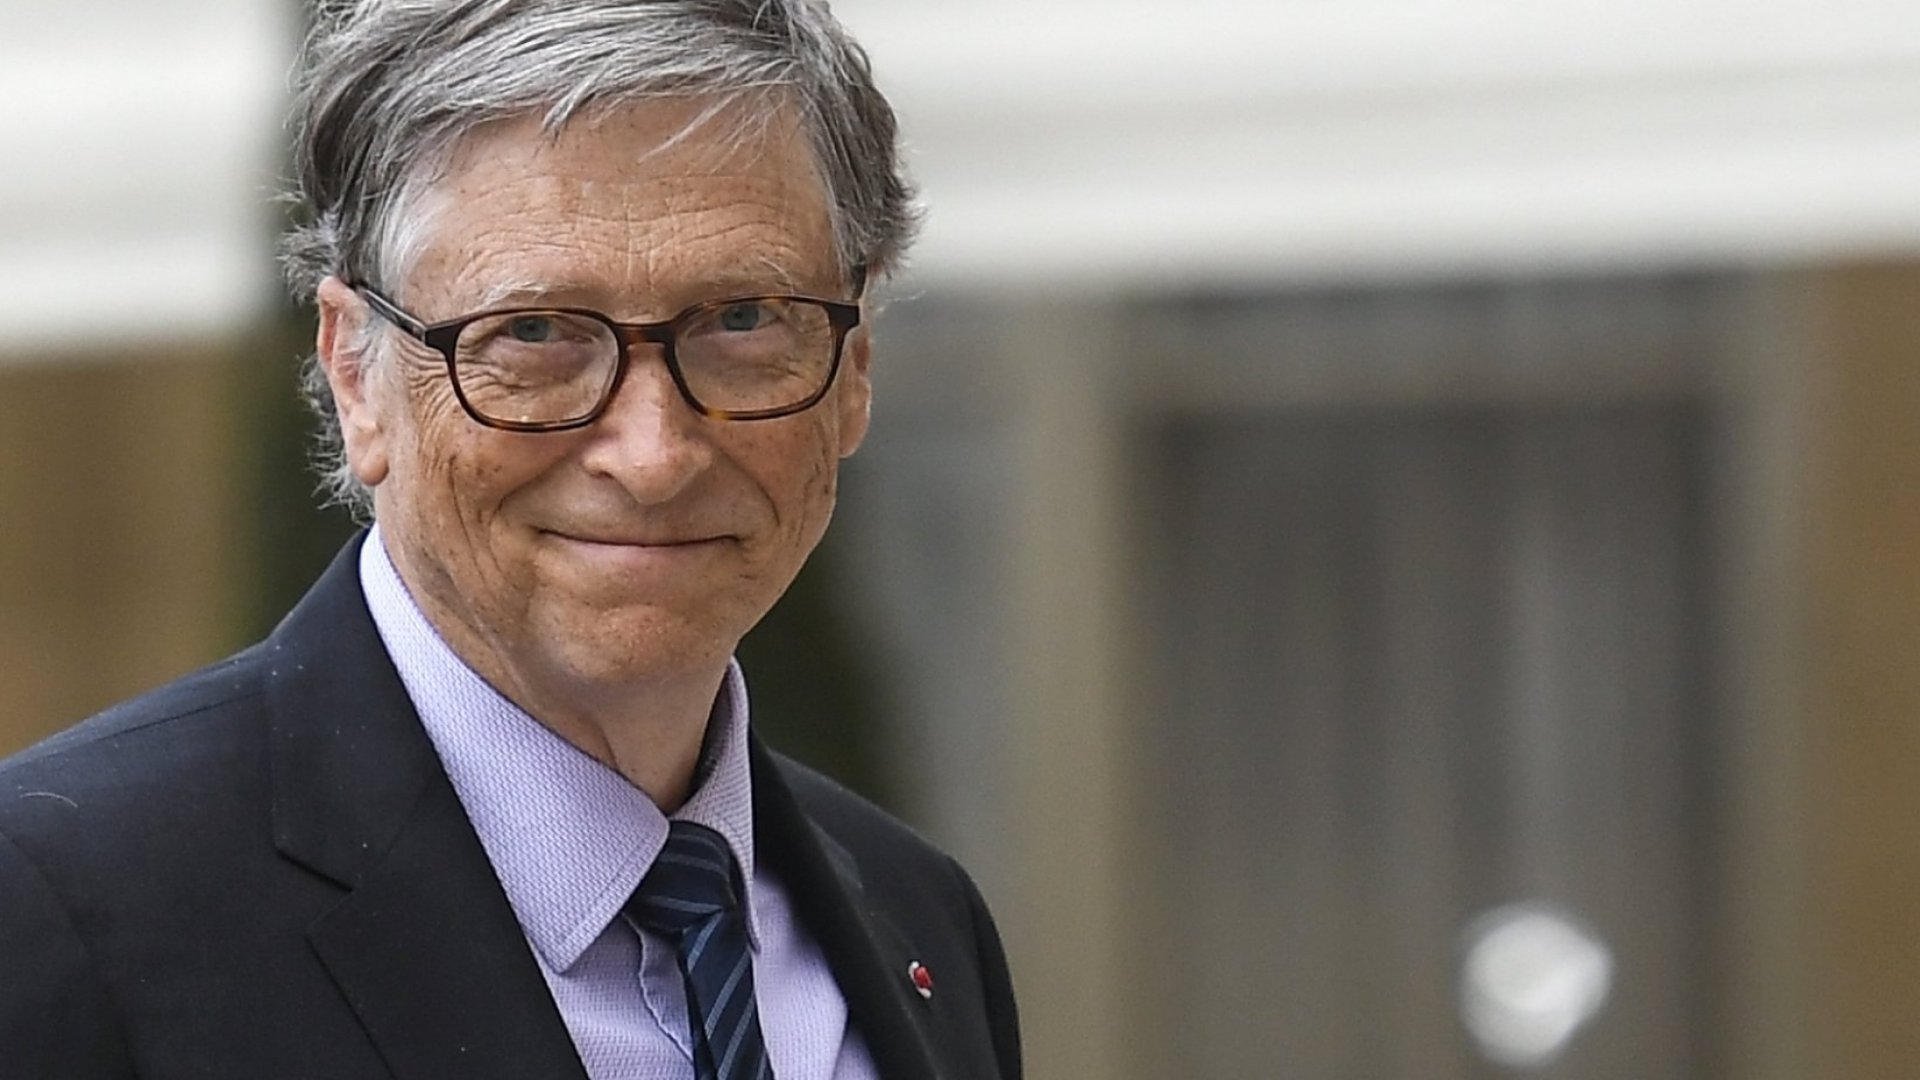 Bill Gates Just Shared His 7 Favorite Tweets Ever, and They All Have 1 Big Thing in Common